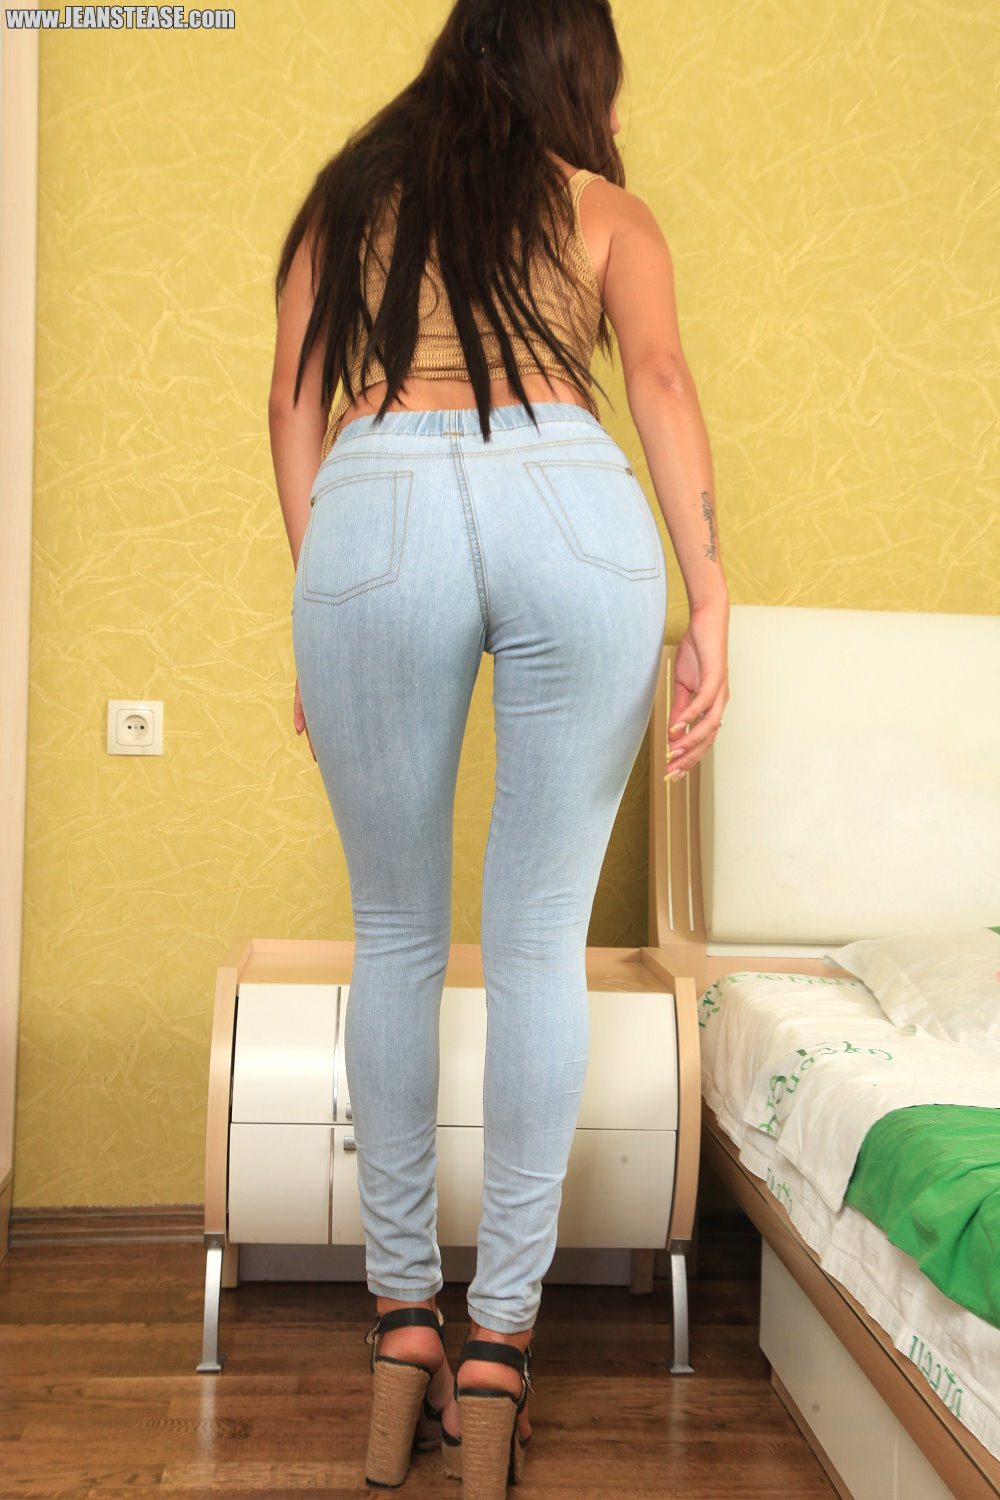 jeans Girls tease tight